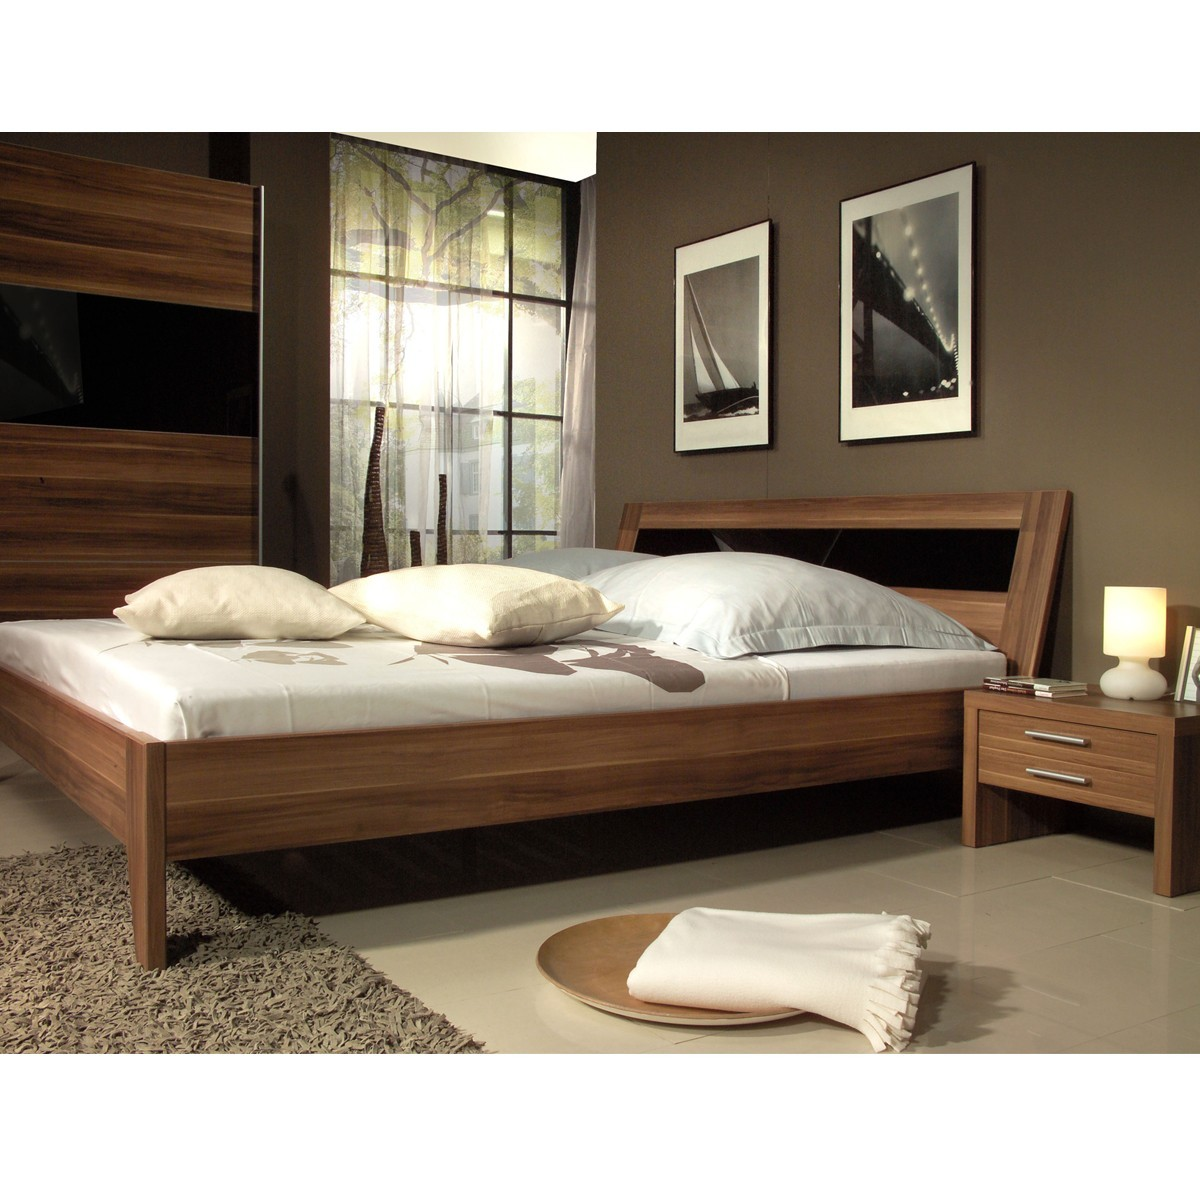 bett 140x200 doppelbett 2x nachtkommoden dreamnight in nussbaum schwarz glas ebay. Black Bedroom Furniture Sets. Home Design Ideas